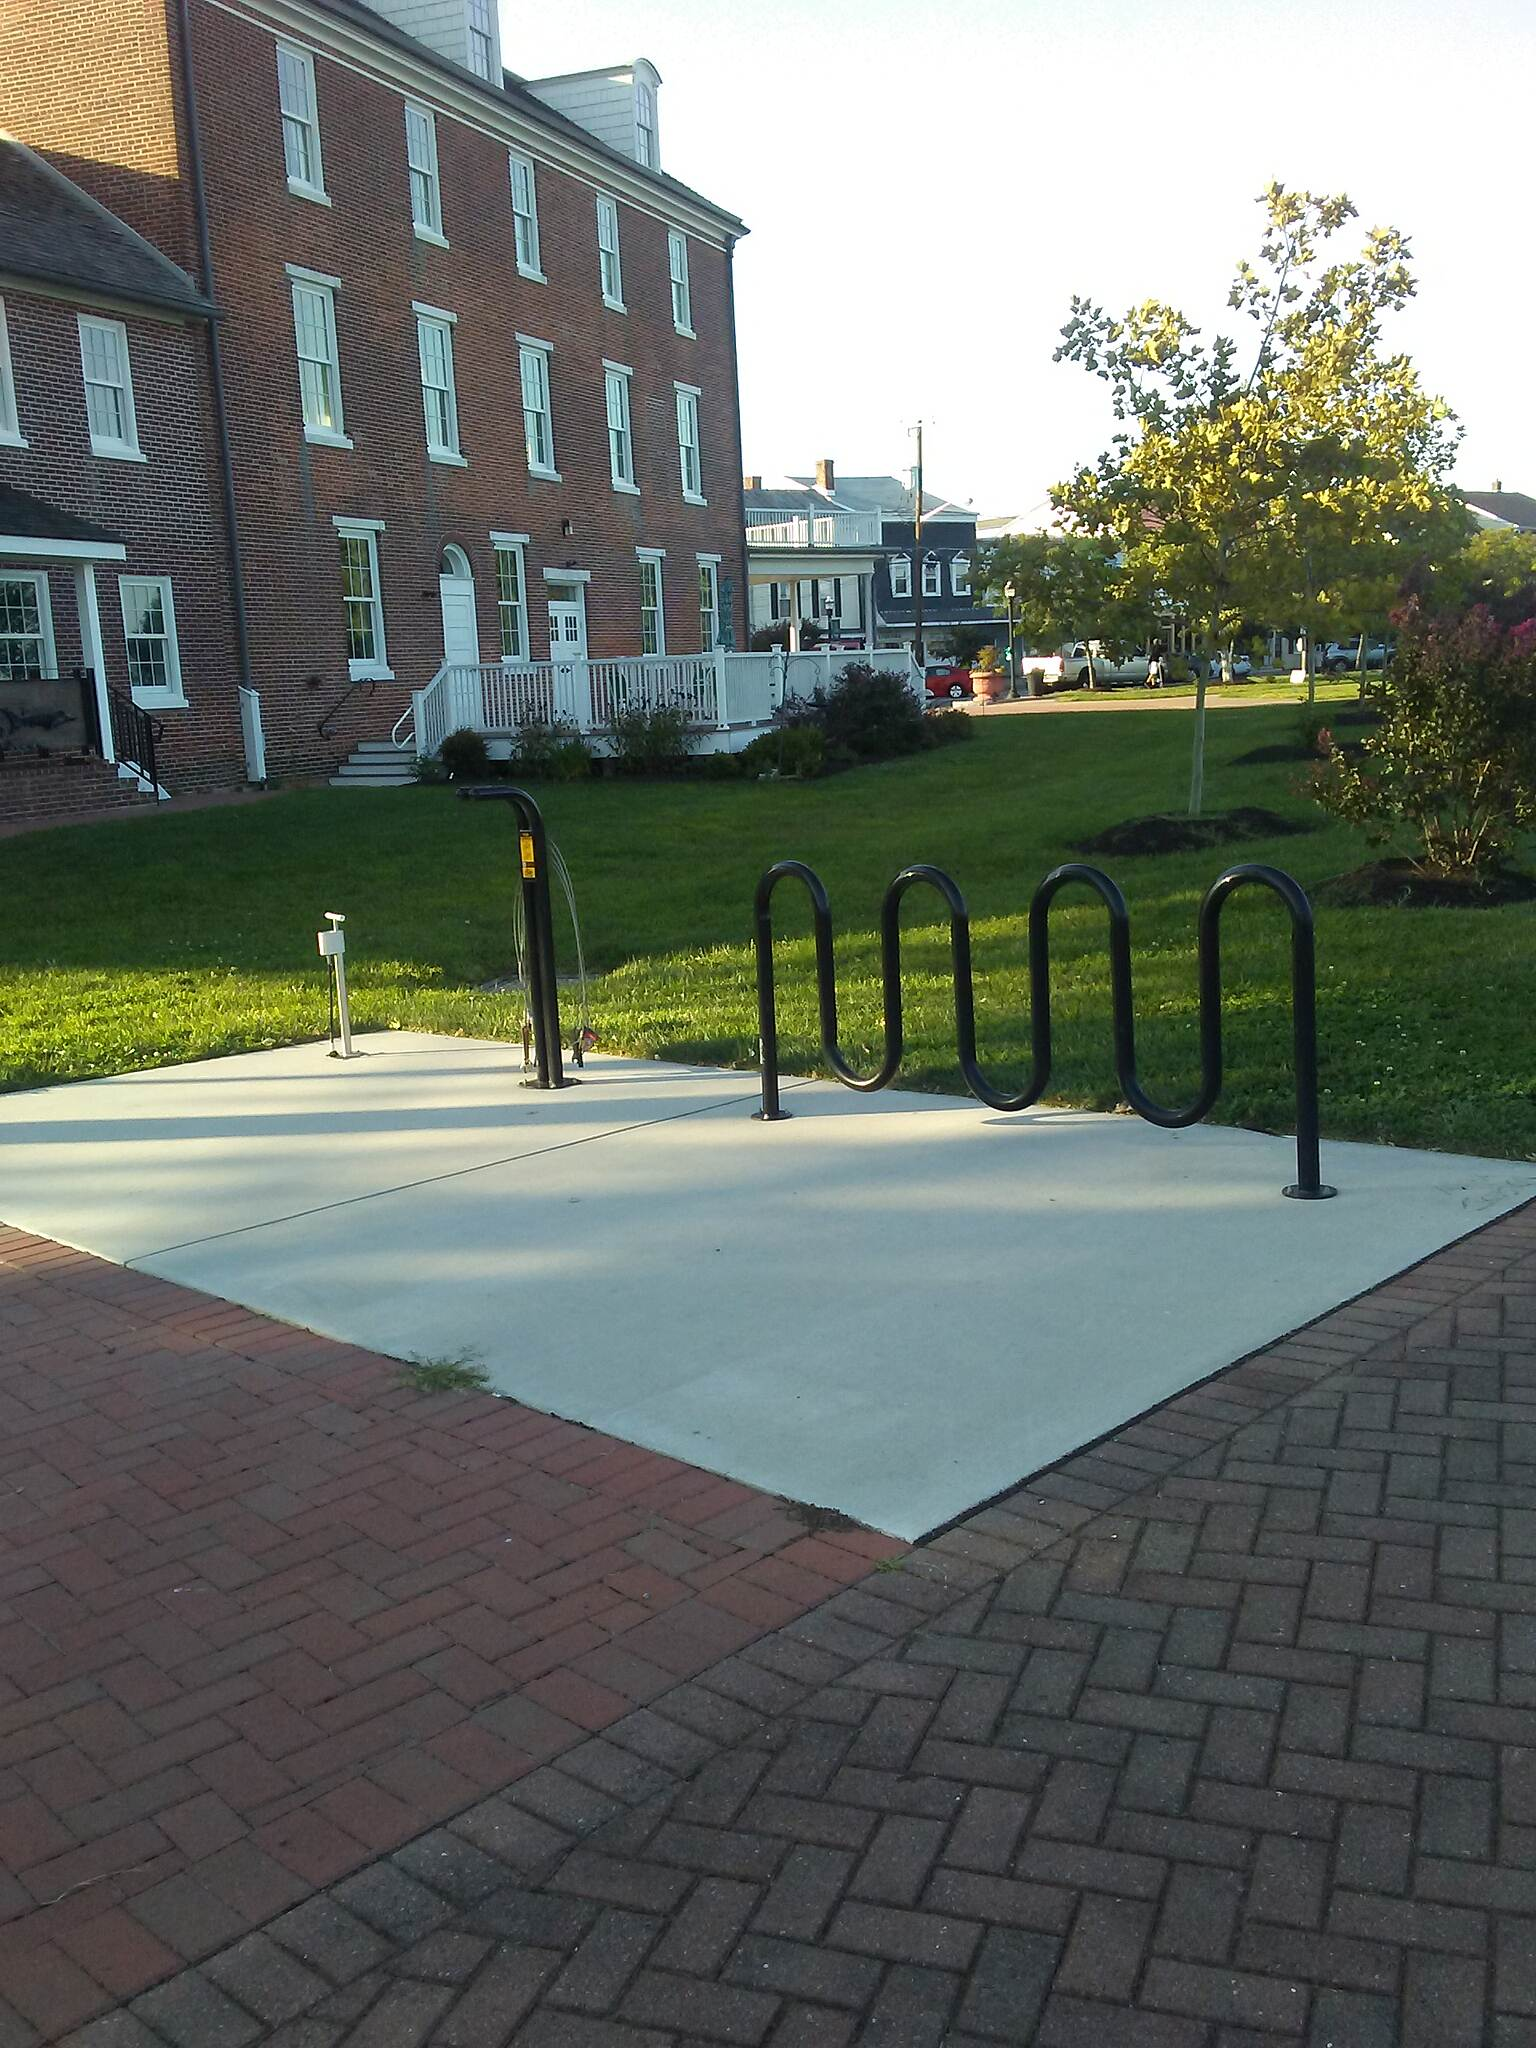 Michael Castle Trail Michael Castle Trail This bike rack and tire maintenance station is outside the old hotel just west of Delaware City's Battery Park and downtown.